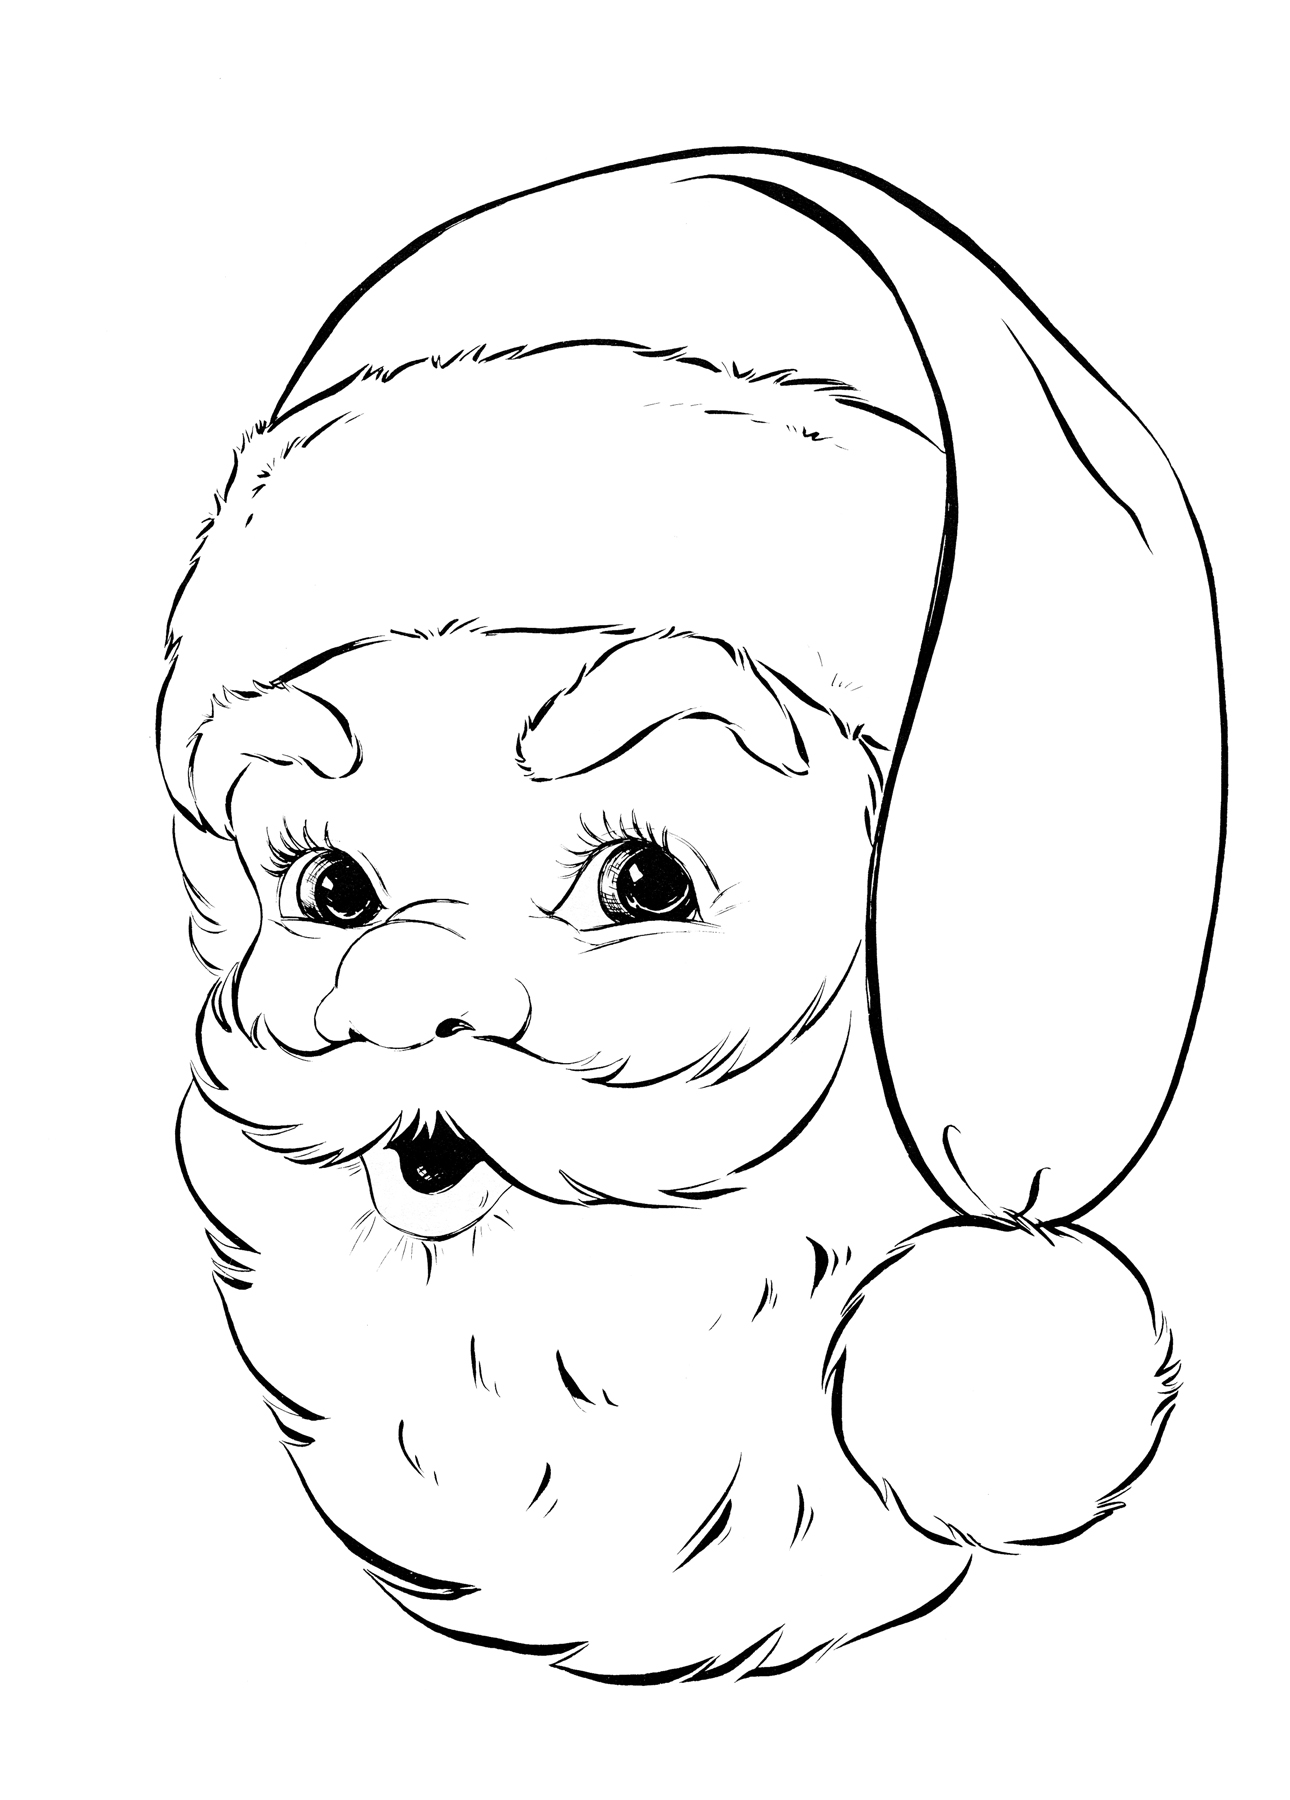 free printable coloring pages for 8 year olds coloring pages for 8 year old boys free download on for printable pages 8 coloring olds free year